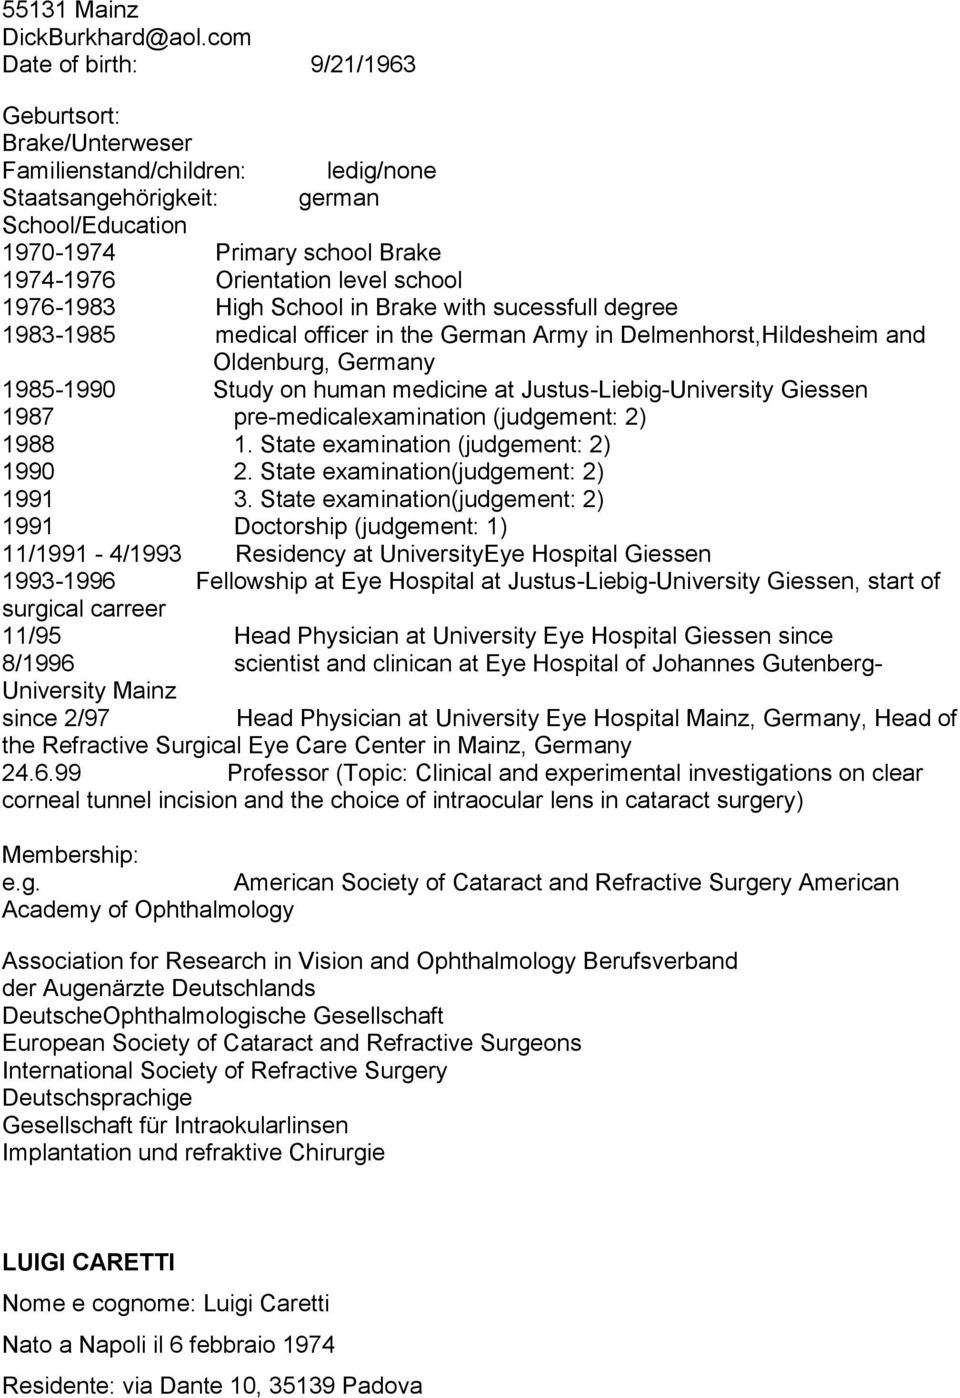 school 1976-1983 High School in Brake with sucessfull degree 1983-1985 medical officer in the German Army in Delmenhorst,Hildesheim and Oldenburg, Germany 1985-1990 Study on human medicine at